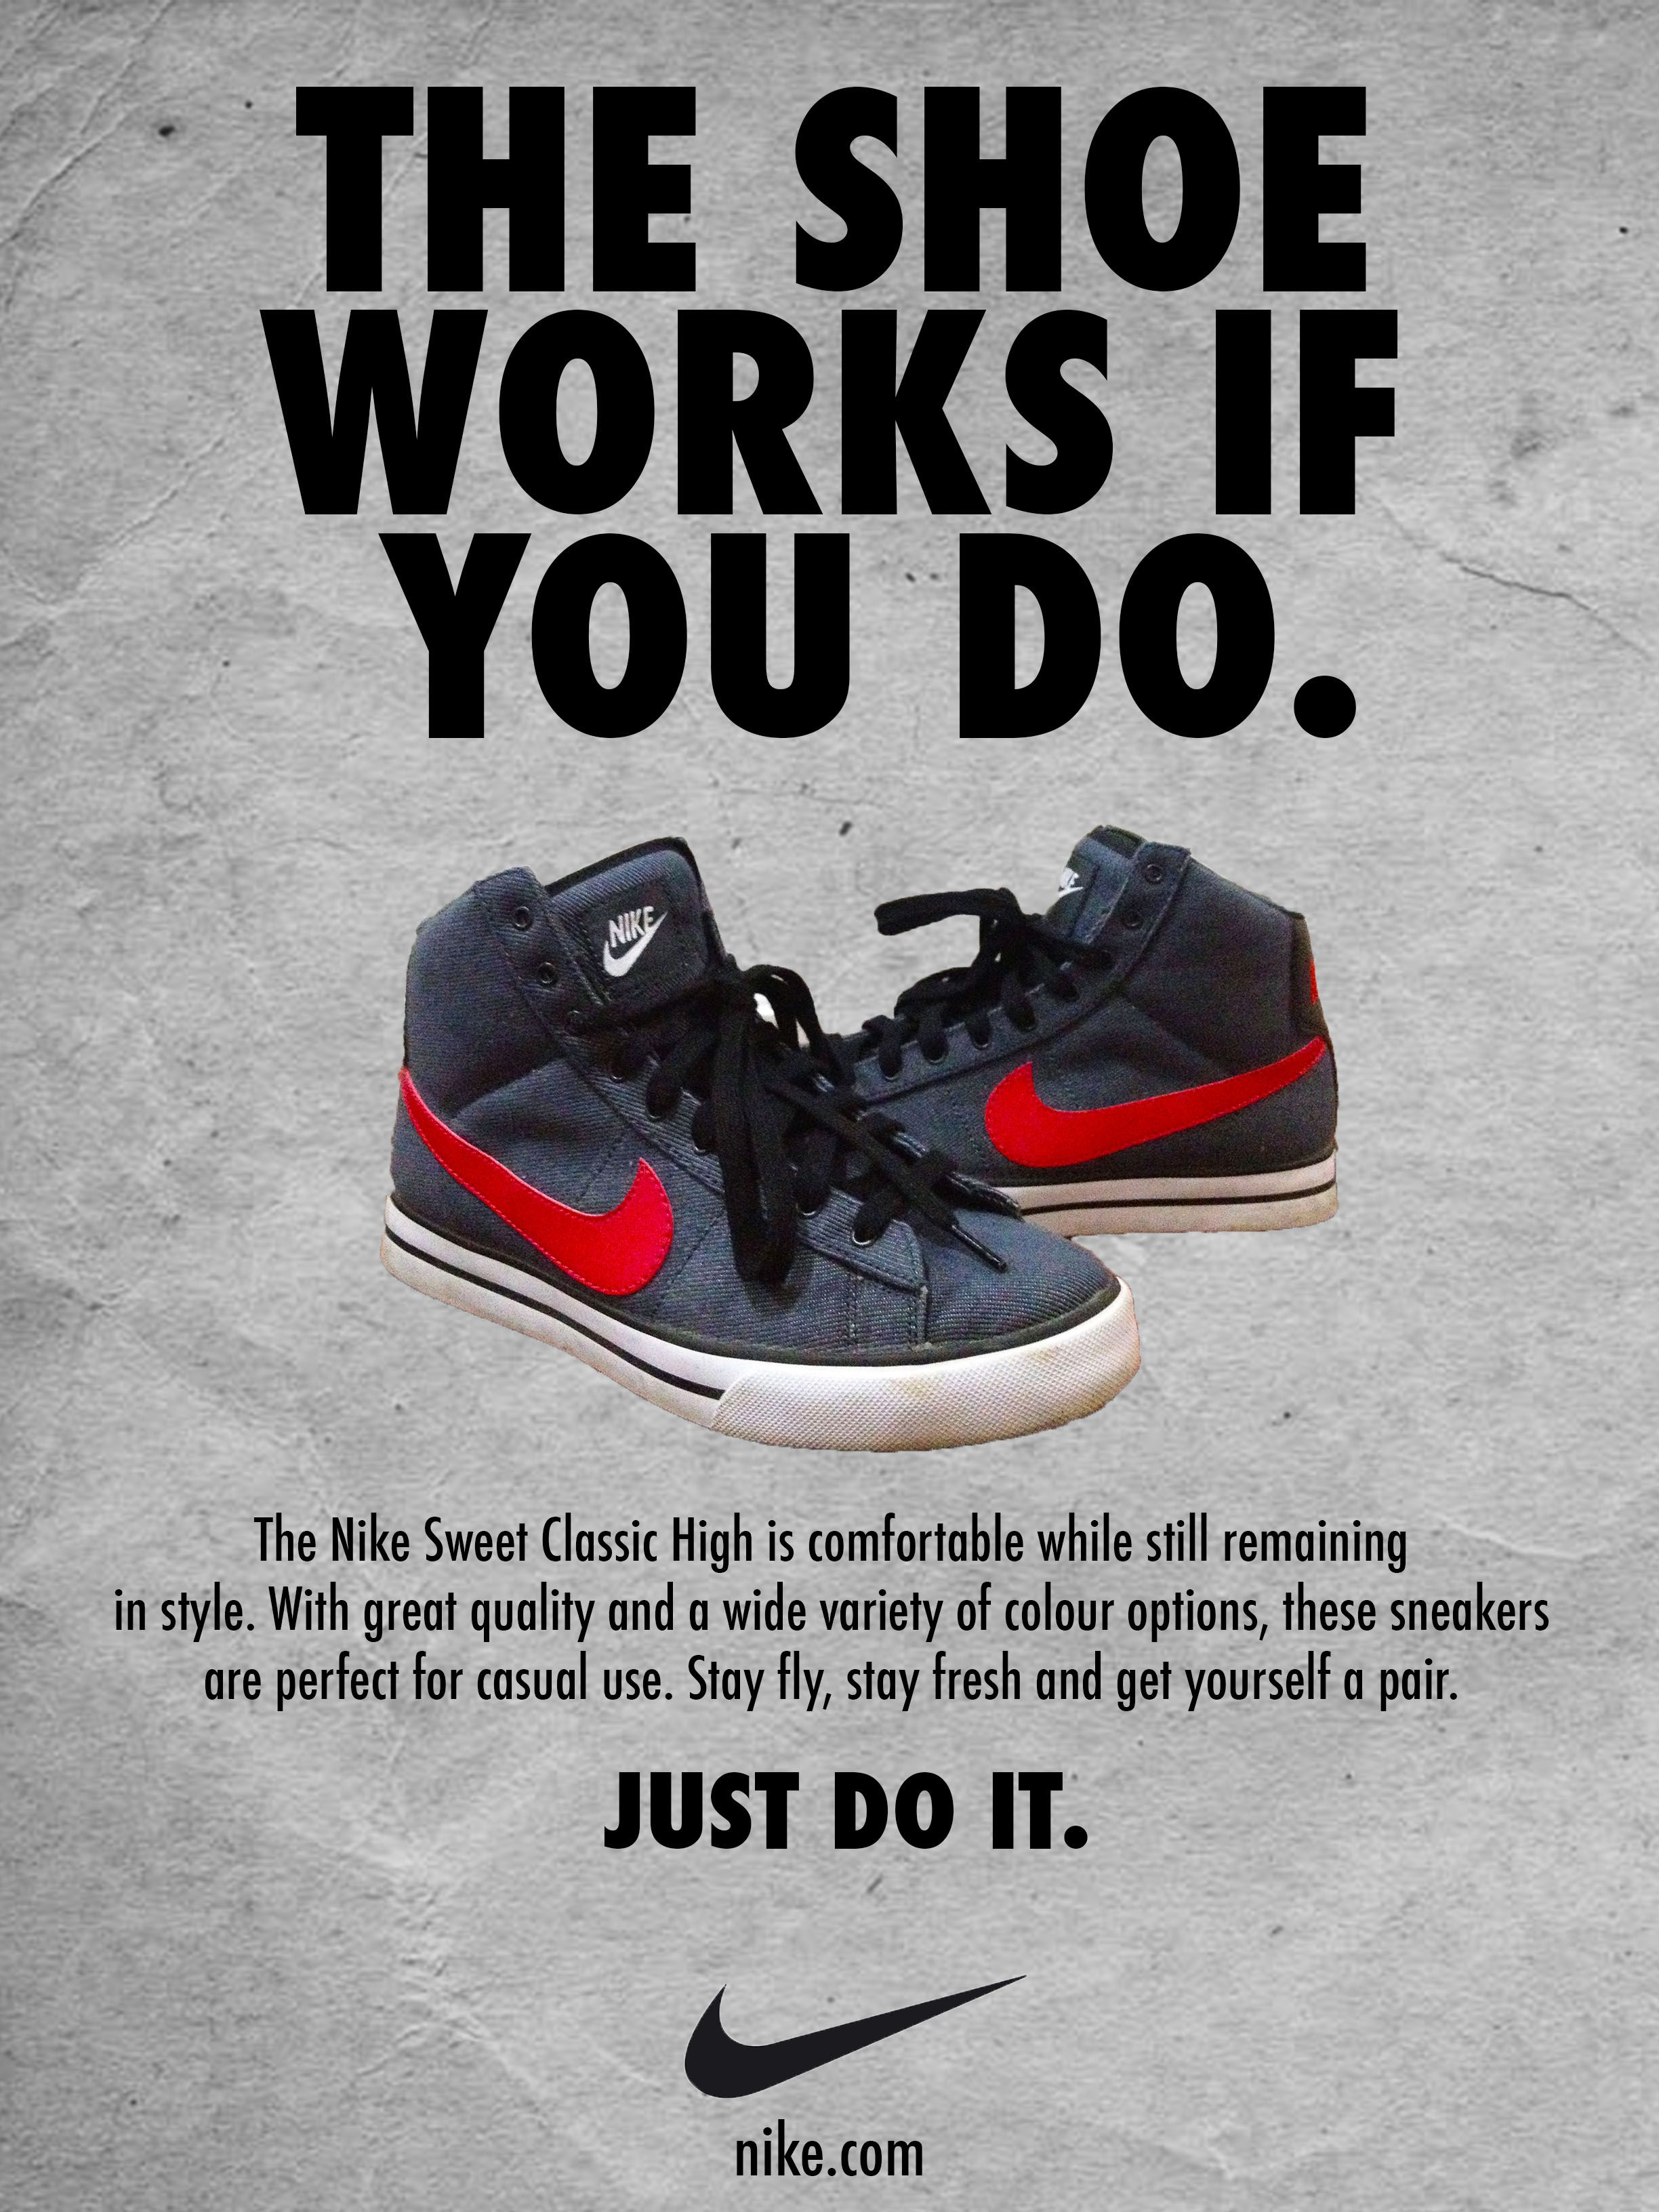 air jordan print advertisement example